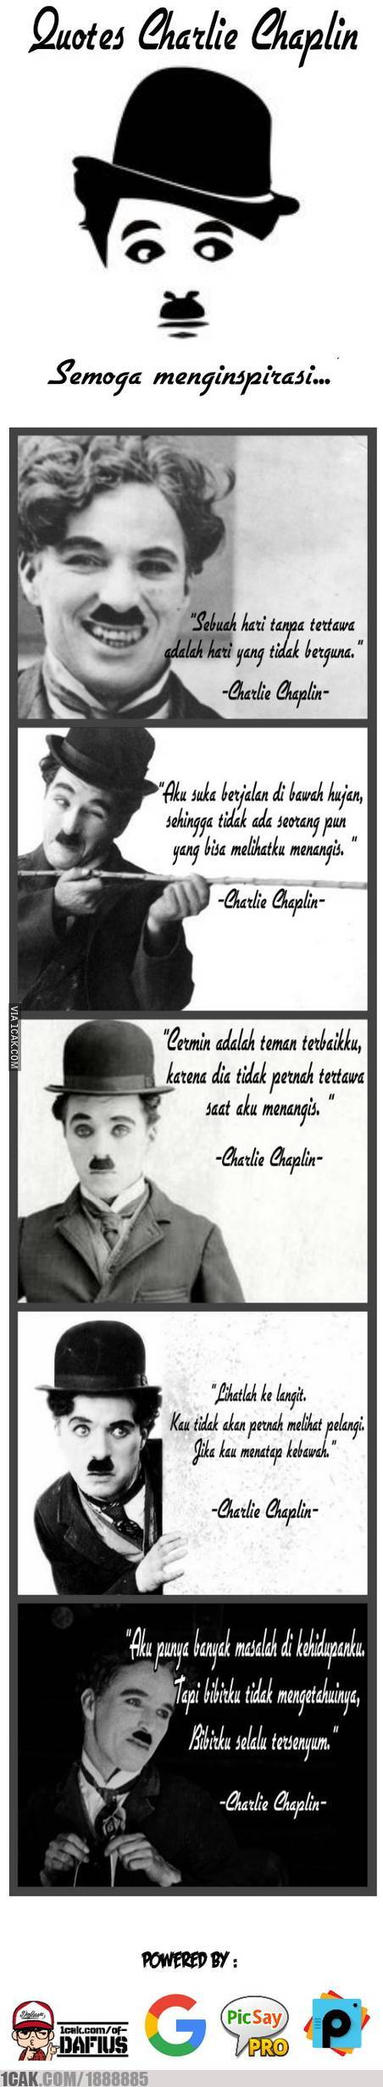 Chaplin Quotes(Indonesian version) by Tanosudibyo